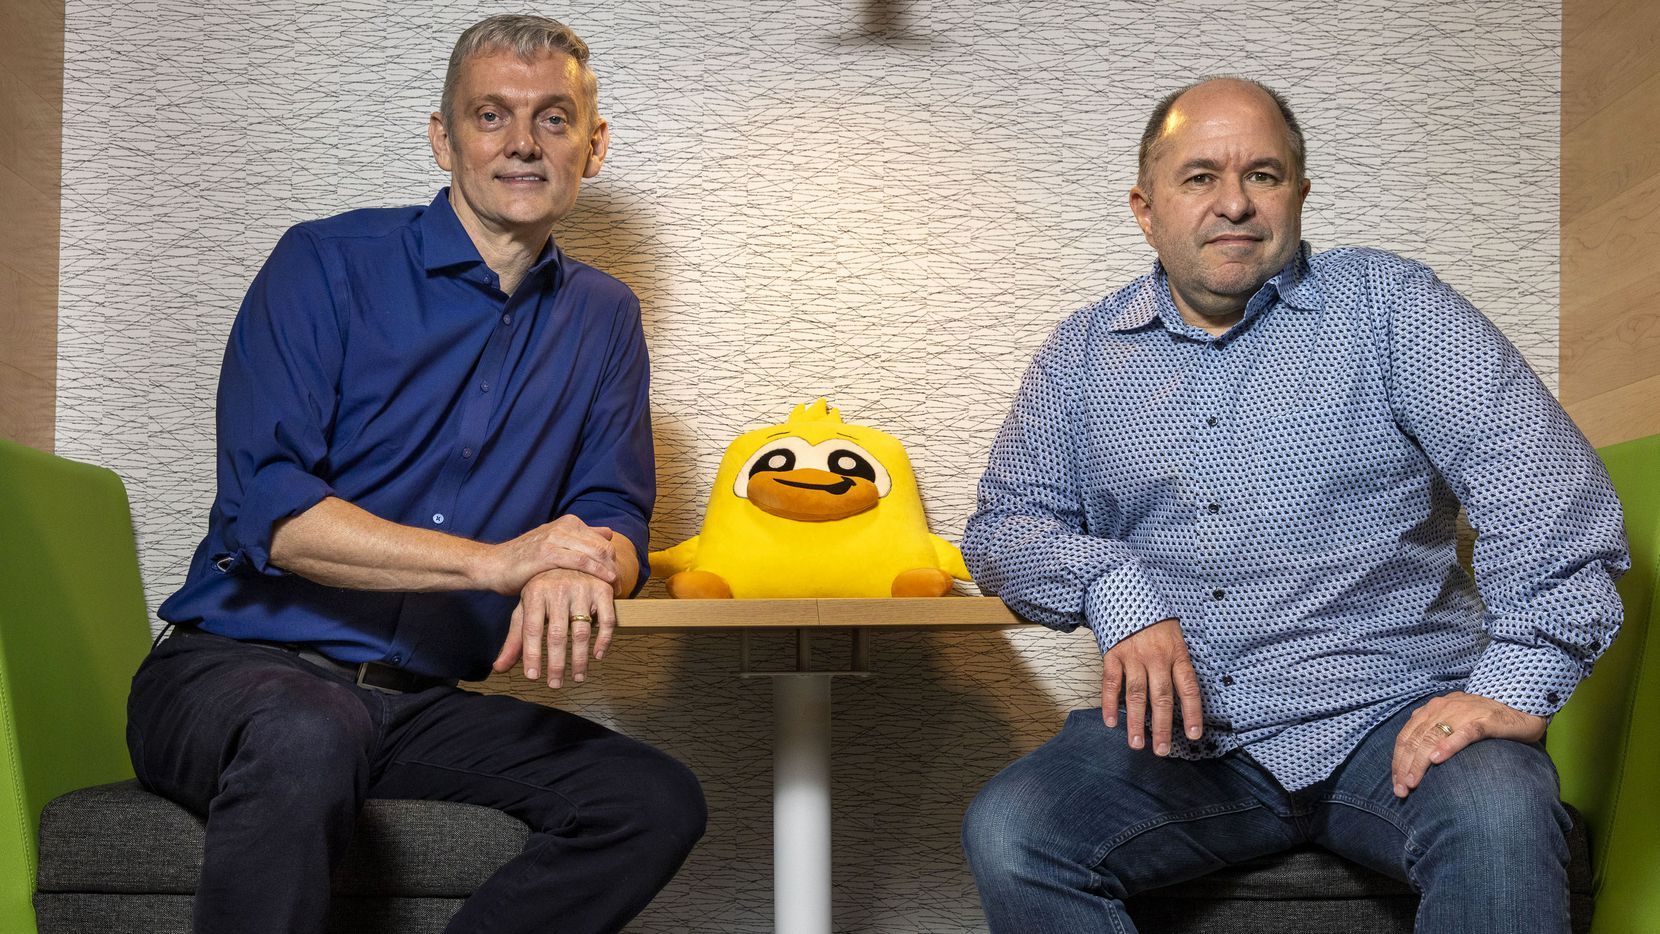 Chief Operating Officer John Boog-Scott, left, and CEO Tony Goodman pose for a portrait at the PeopleFun office in Richardson. PeopleFun is one of the world's top developers of casual mobile games.